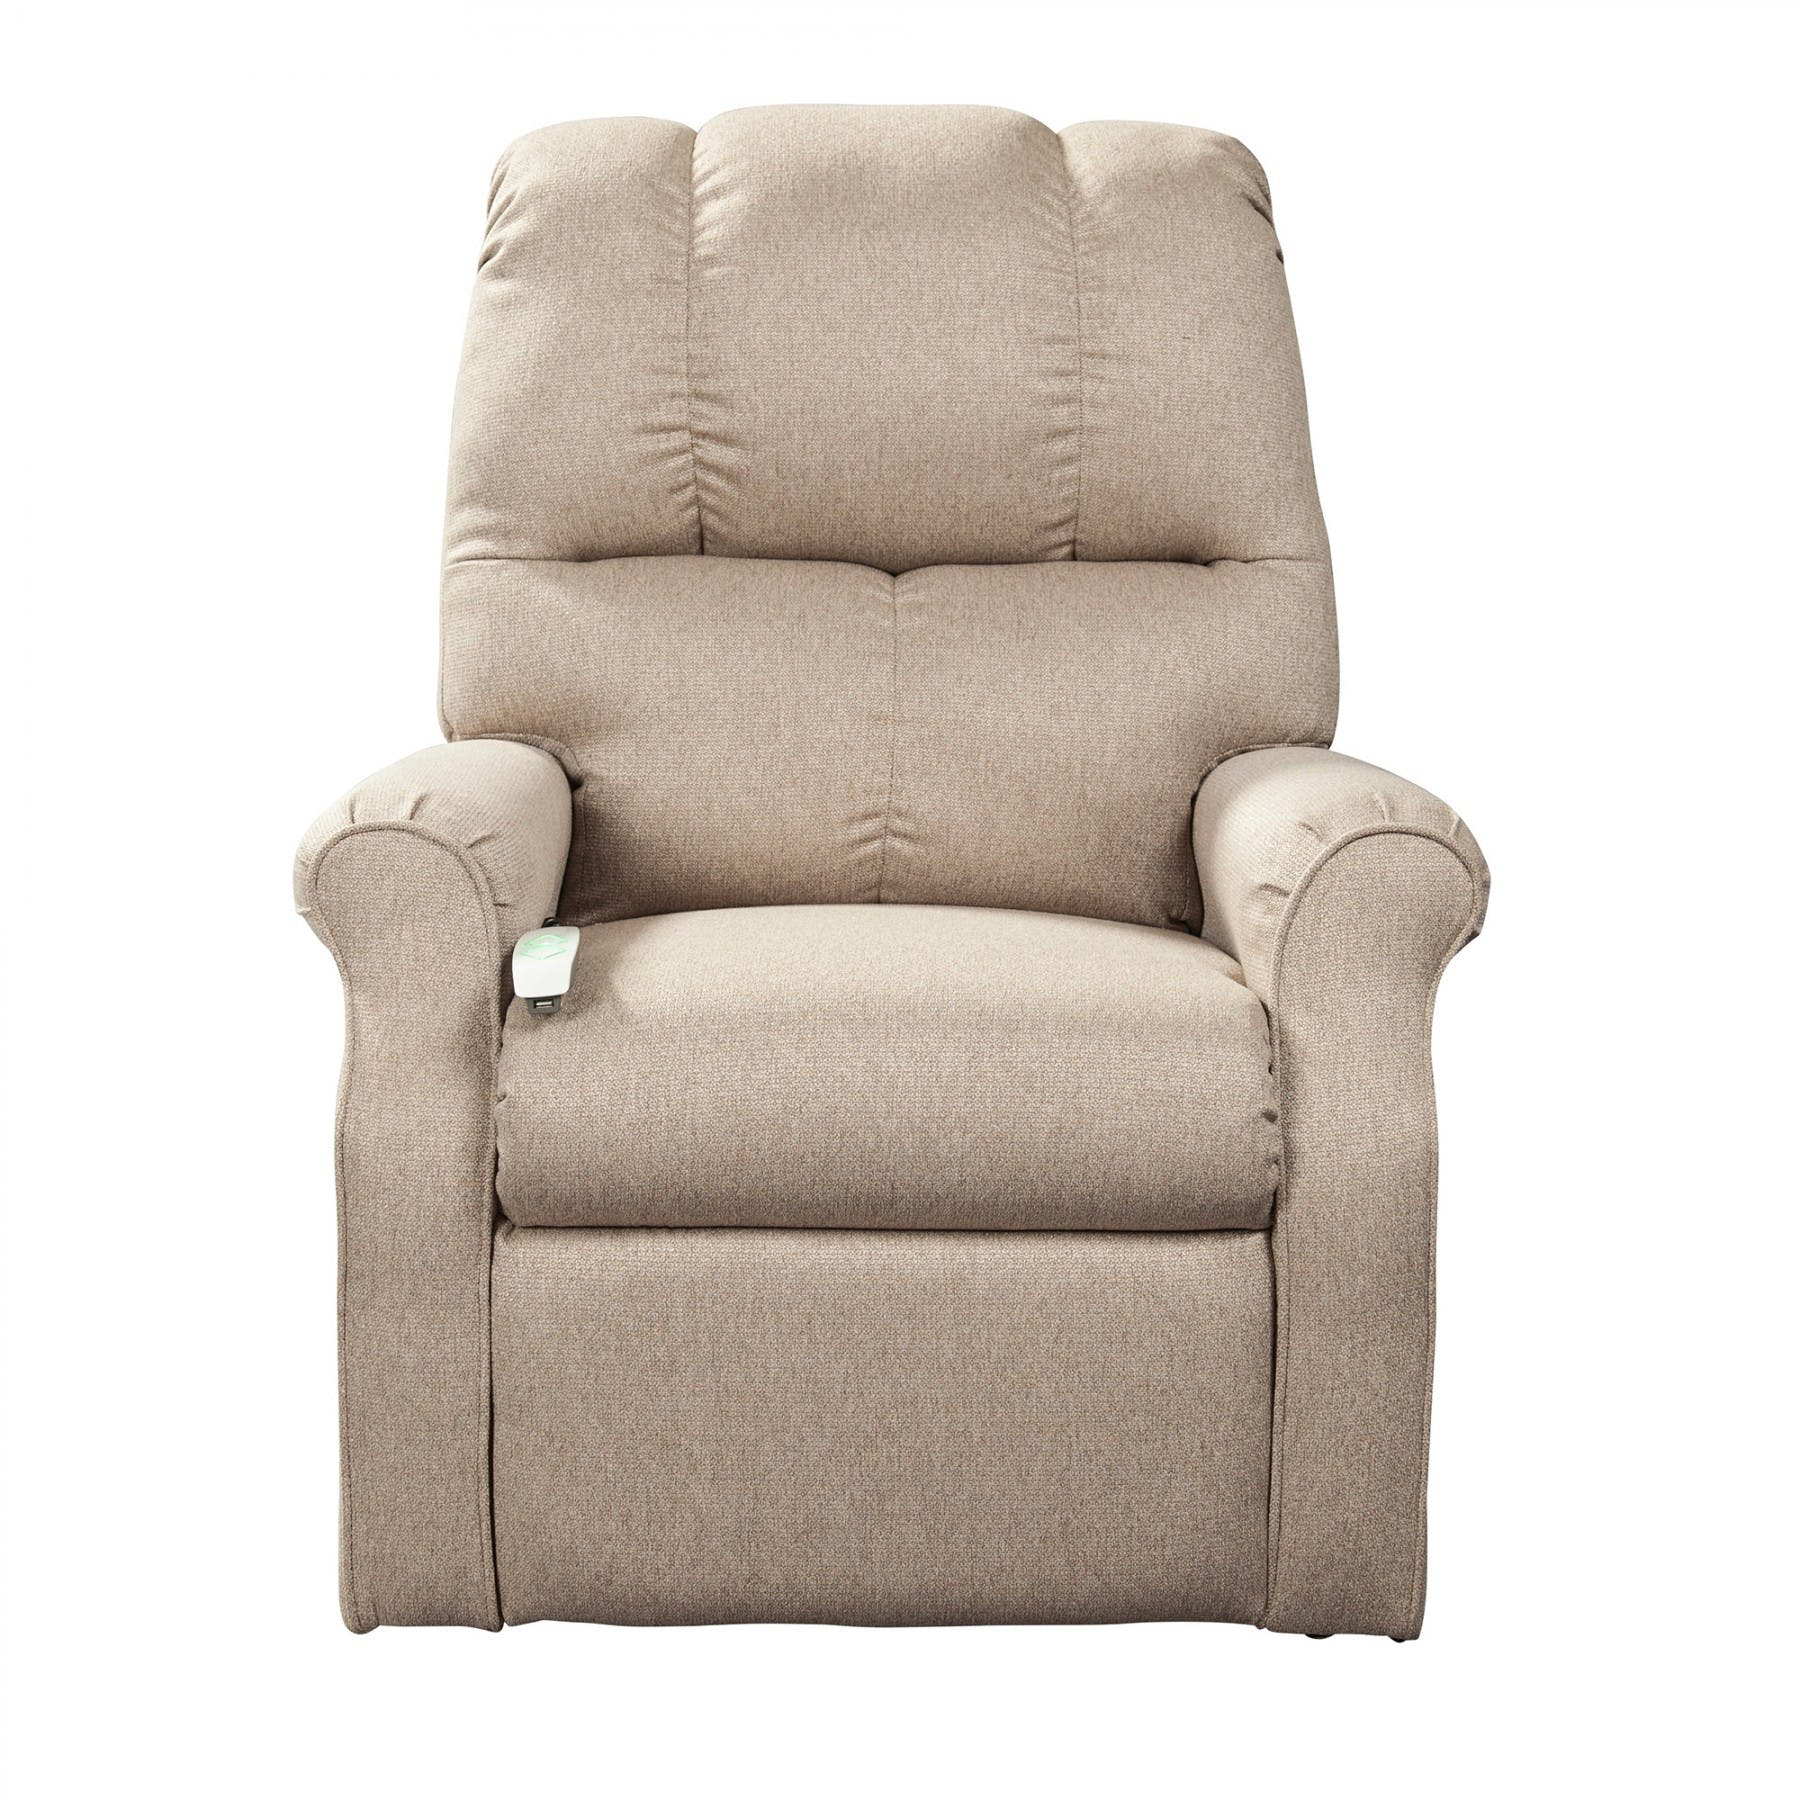 Pocono Power Lift Recliner